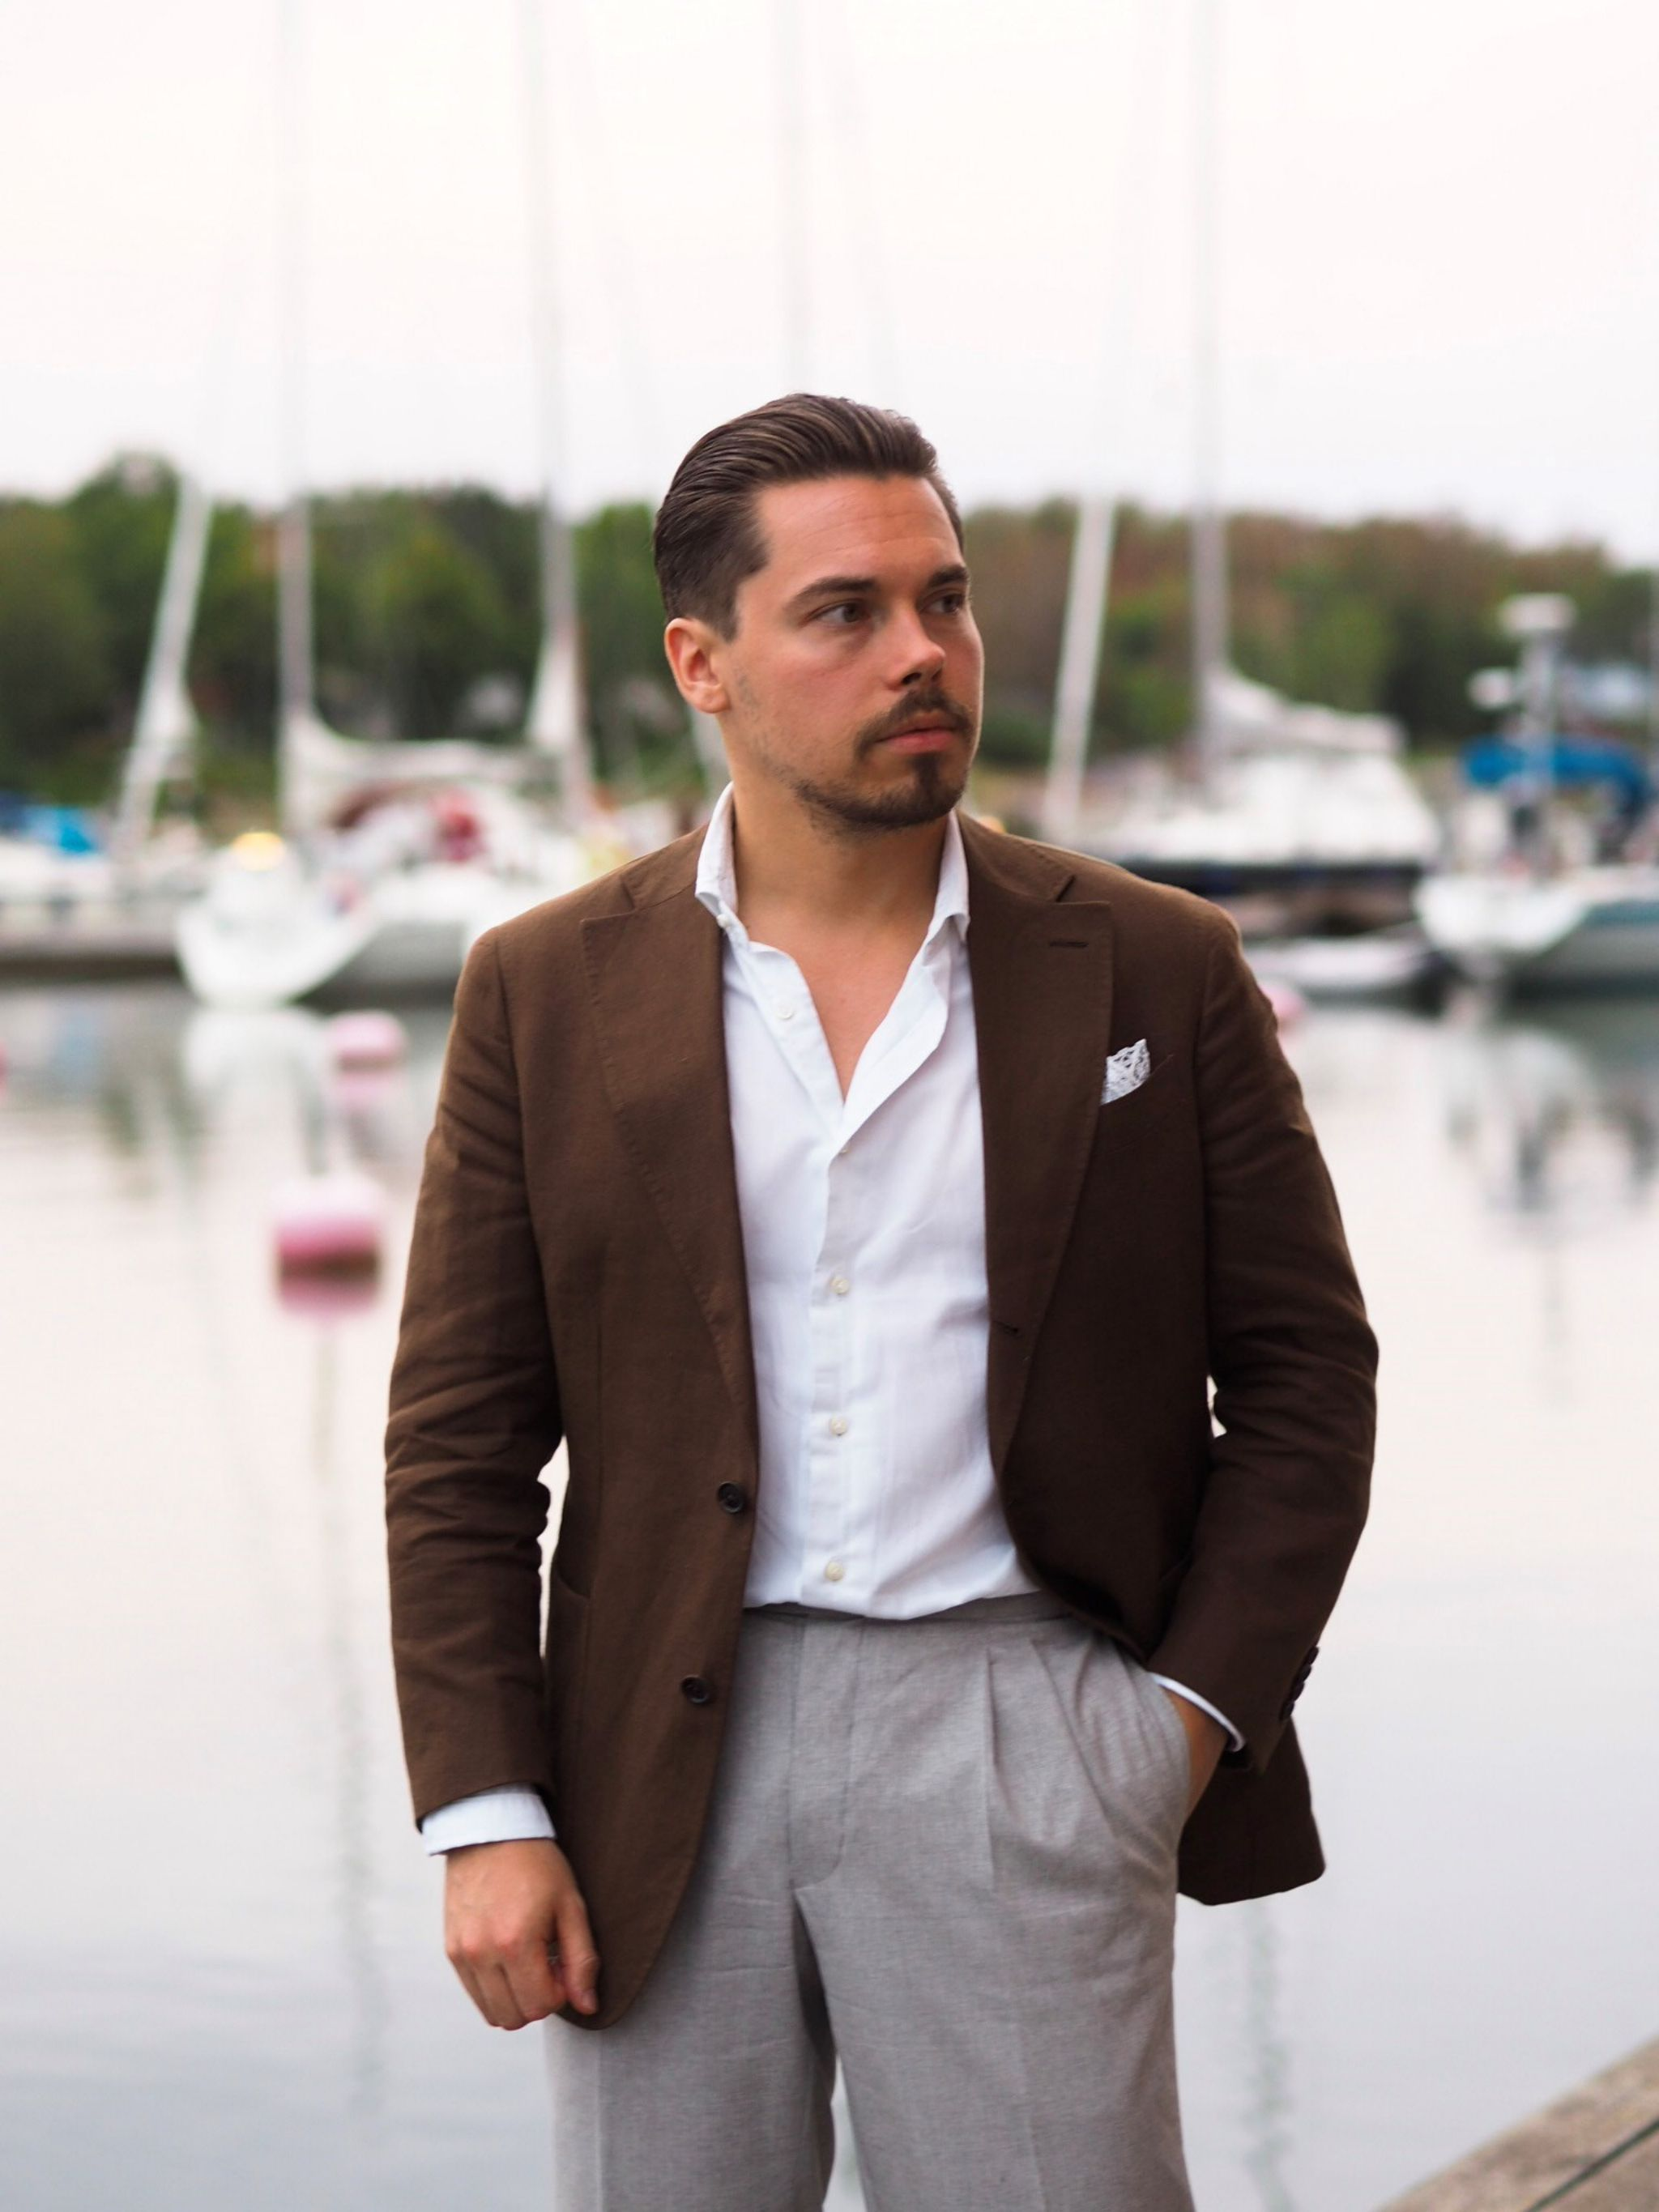 Brown linen suit jacket with light gray suit trousers